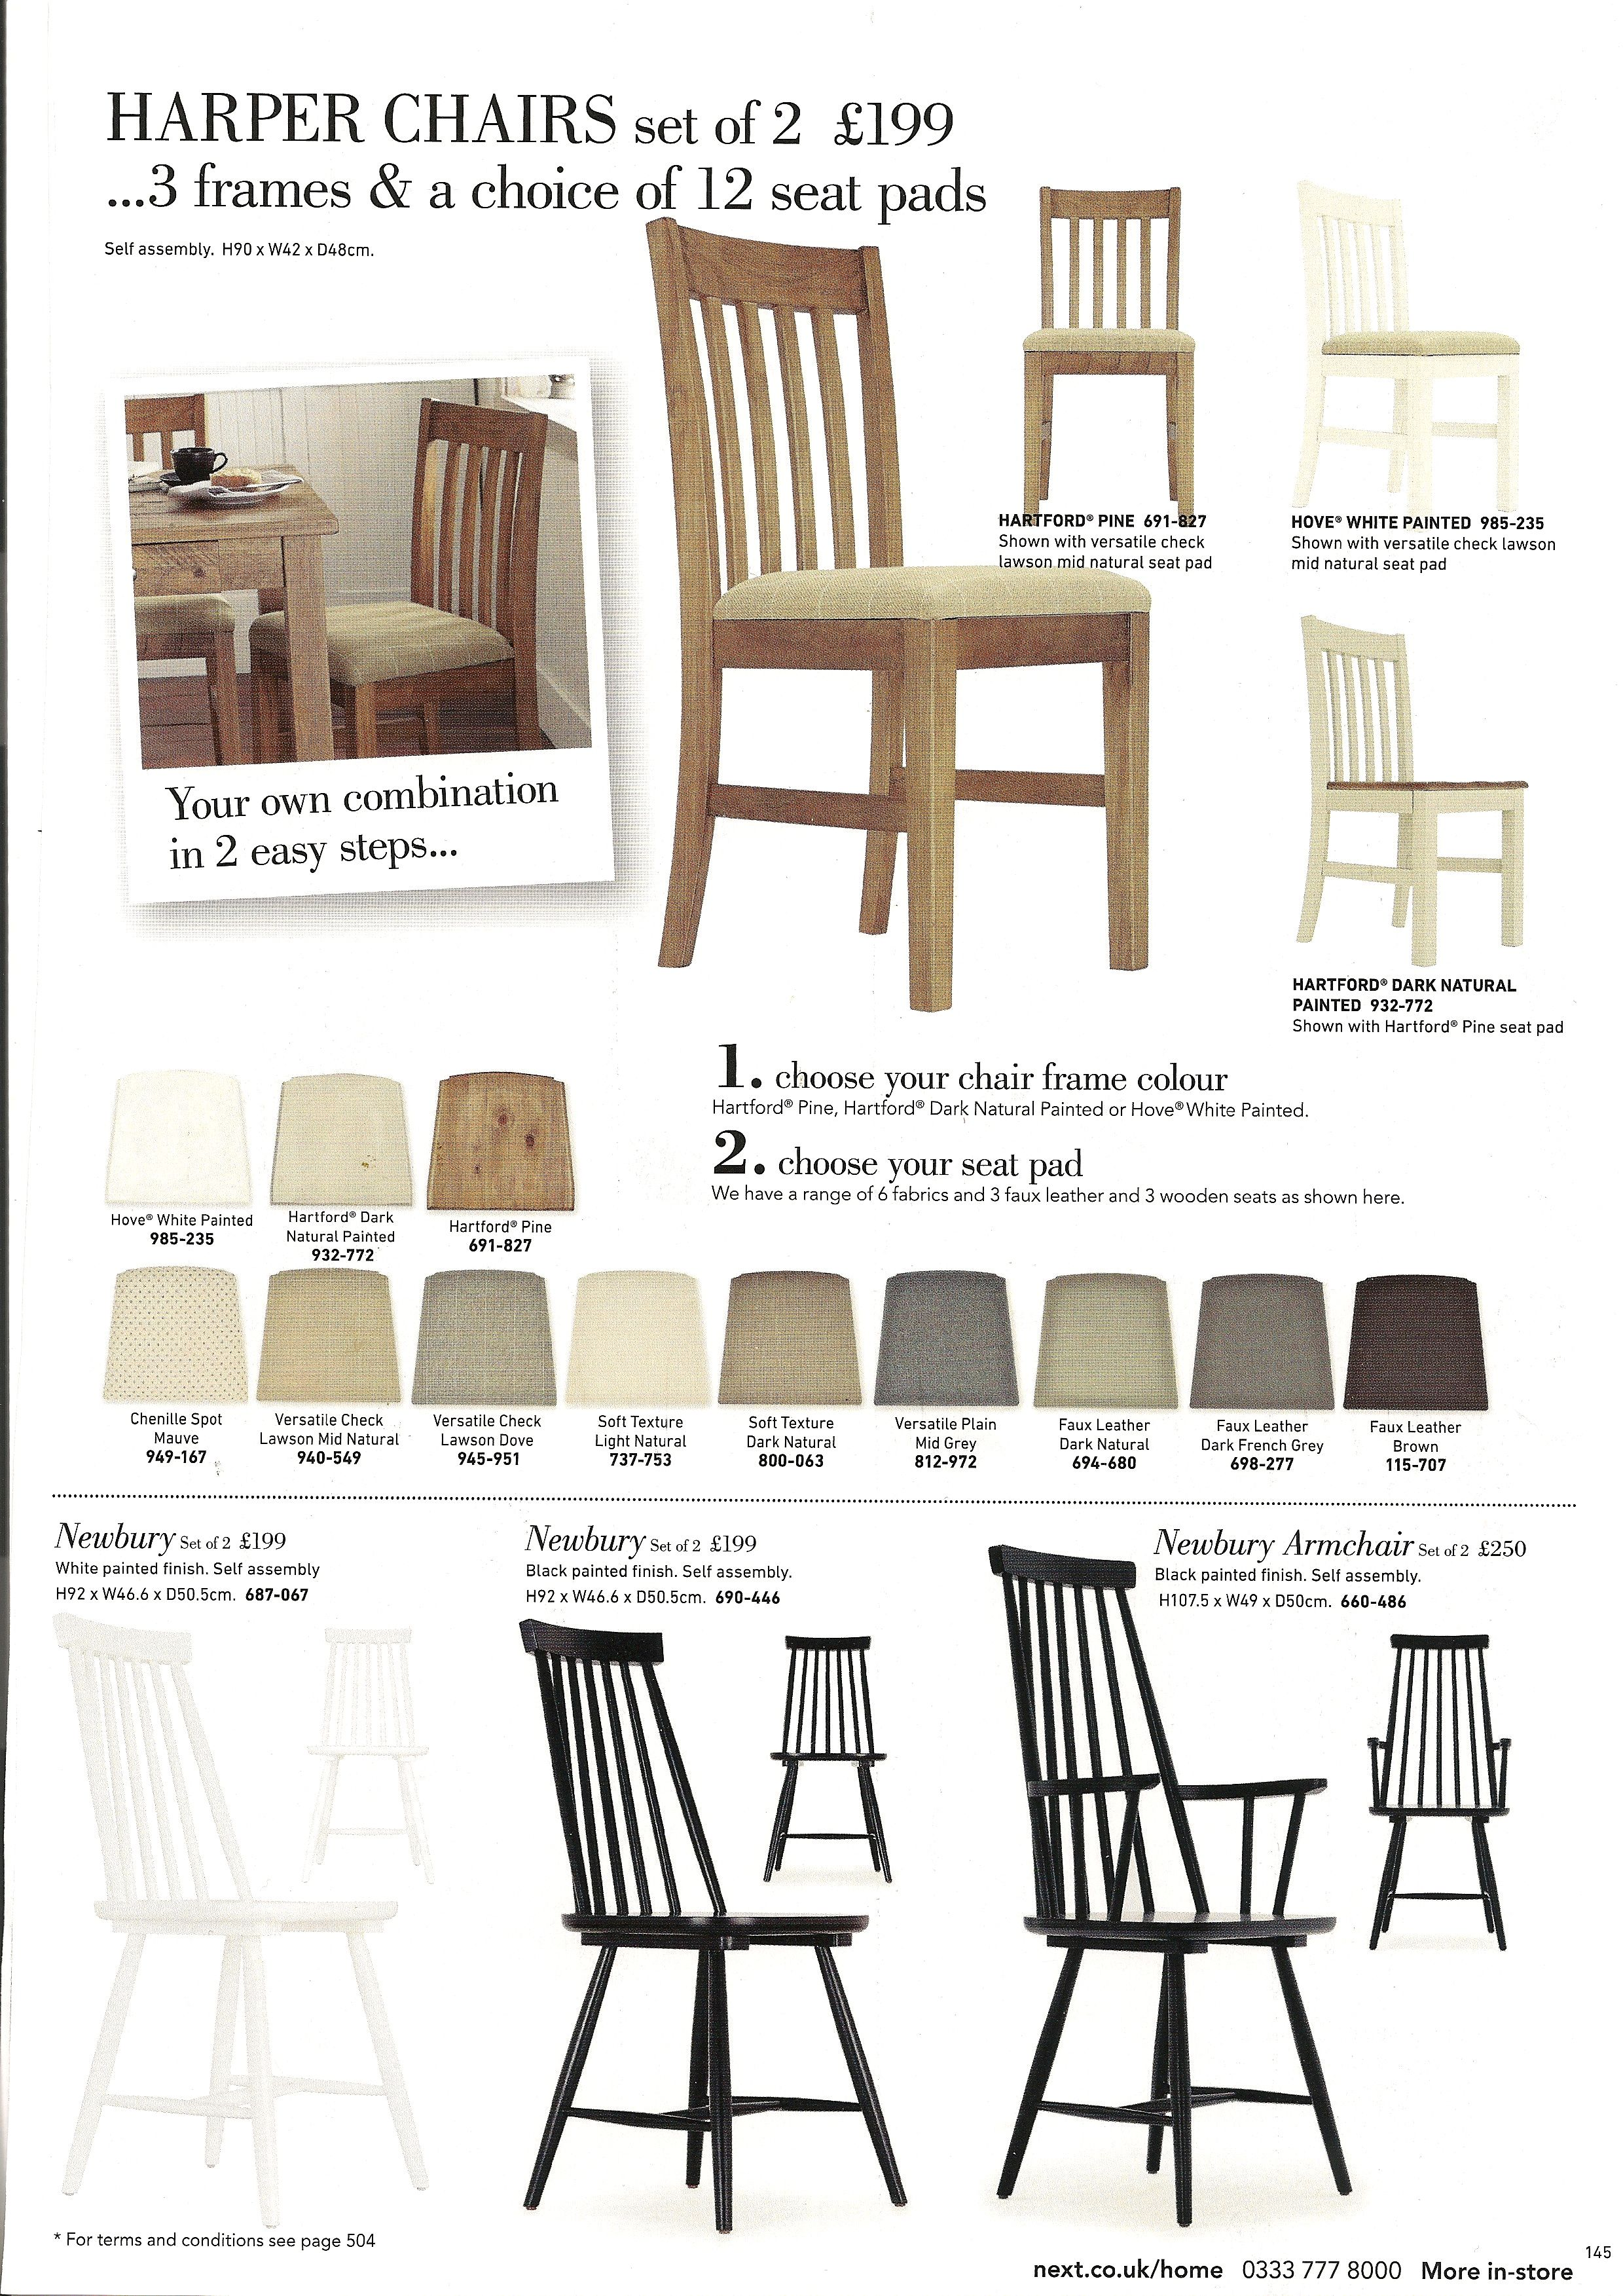 Klassische Sofas You Can Assemble Harper And Newbury Dining Chairs Next Pinterest Dining